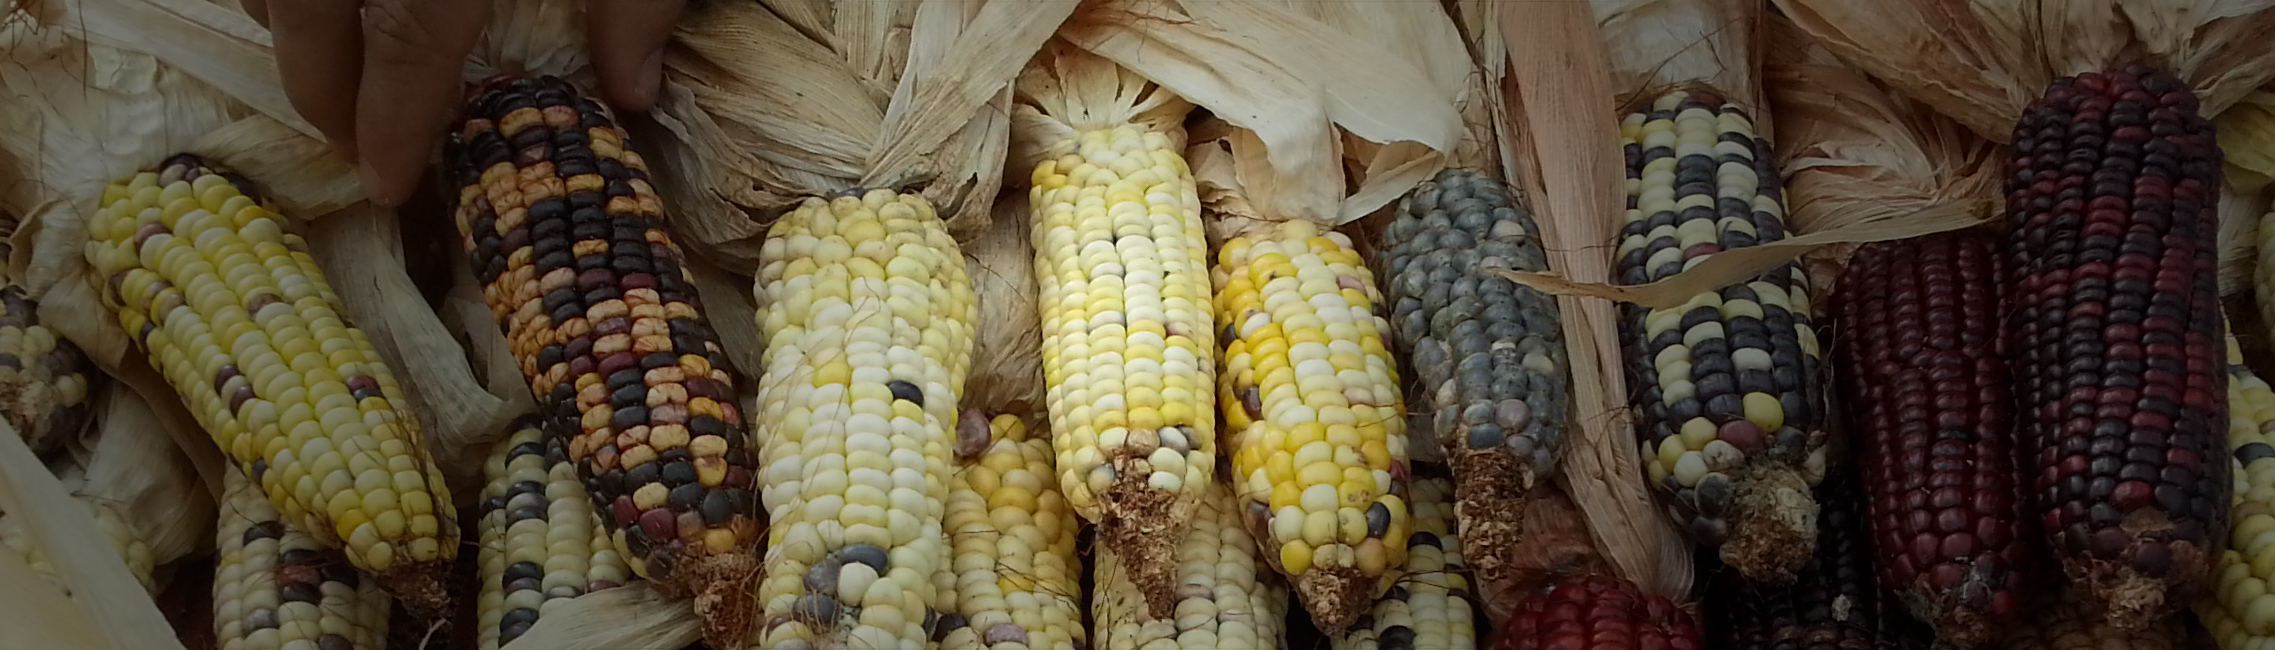 Corn's complex evolutionary legacy